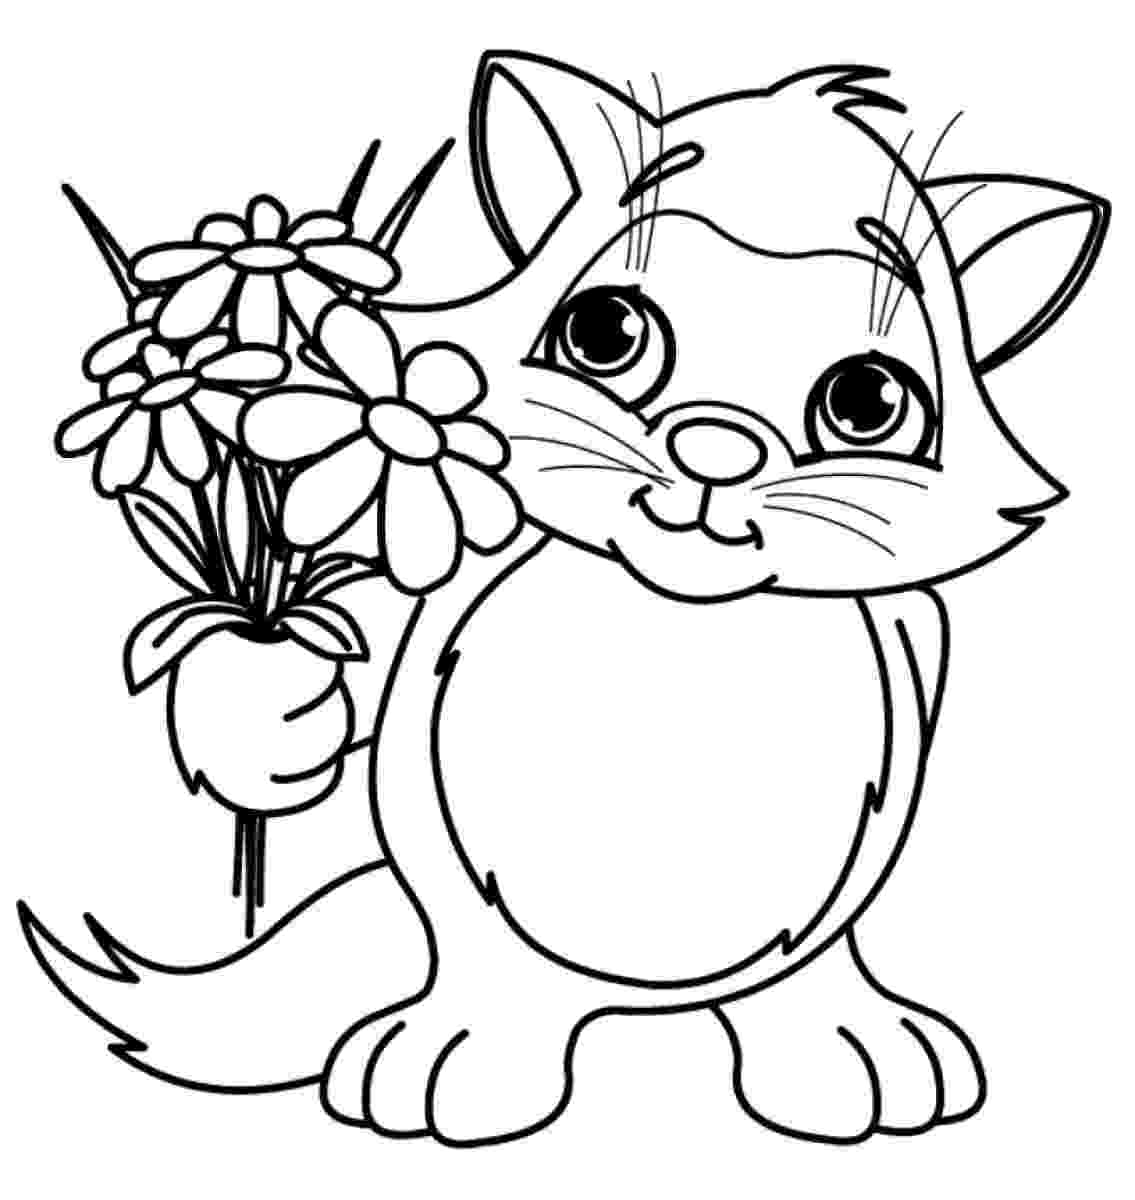 flowers colouring free printable flower coloring pages for kids best colouring flowers 1 3